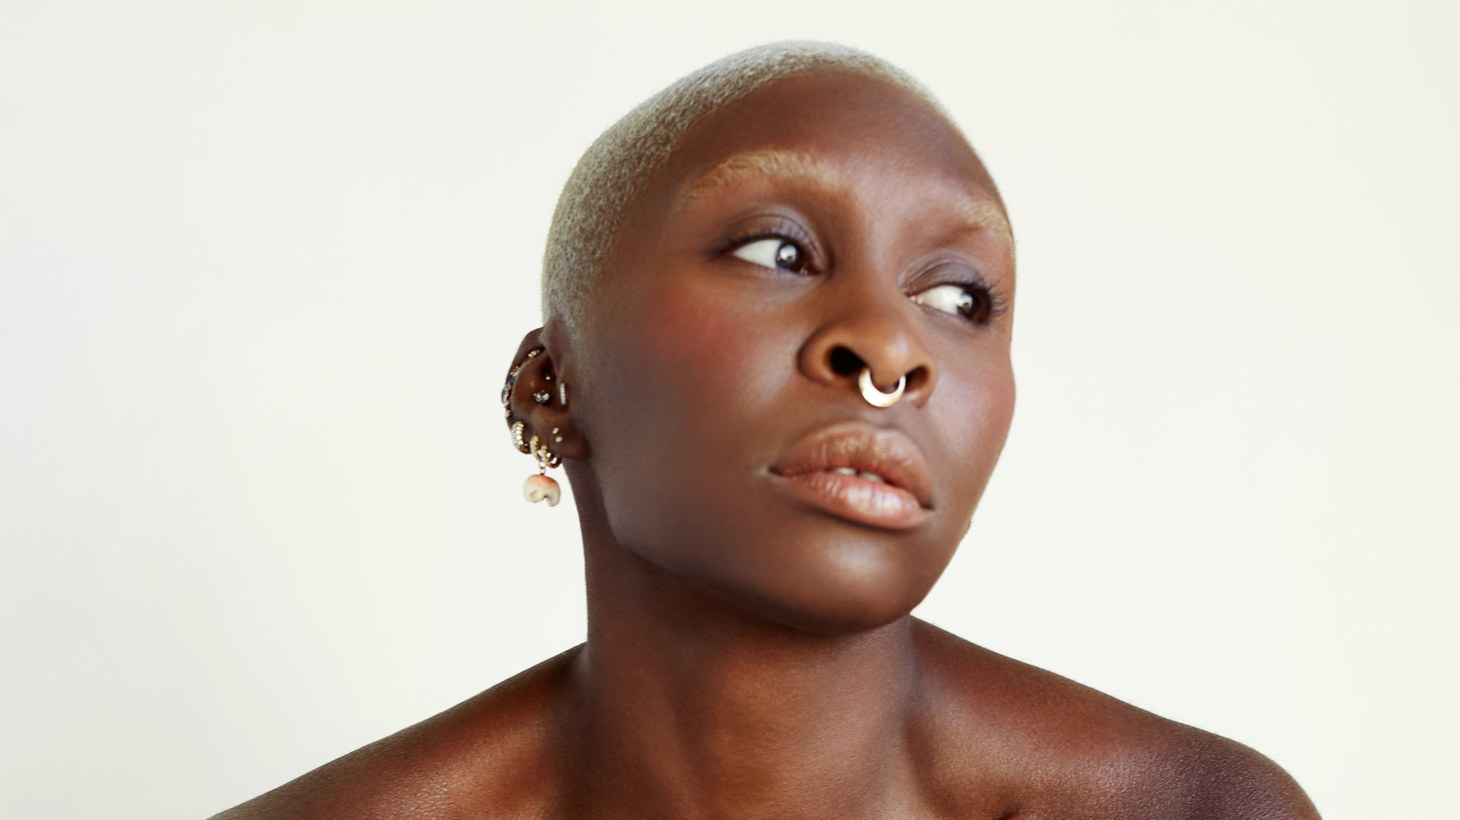 """In National Geographic's """"Genius"""" series, Cynthia Erivo gives an Emmy-nominated portrayal of Aretha Franklin."""